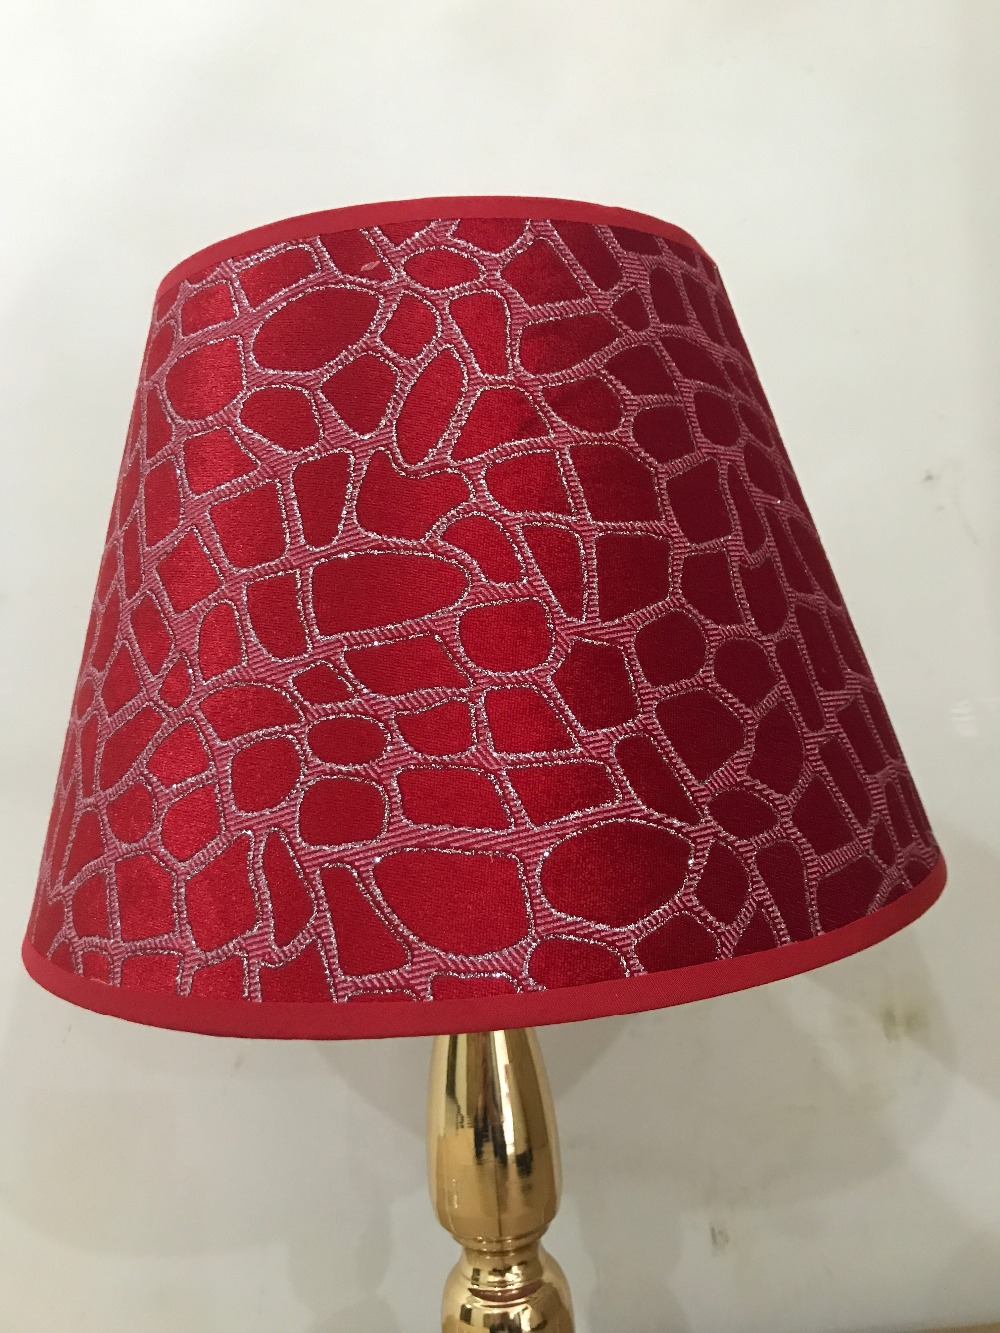 R Lamp shade for table lamps flower Abstract Pattern Textile Fabrics Fashionable Decorative red E27 table lamp shade